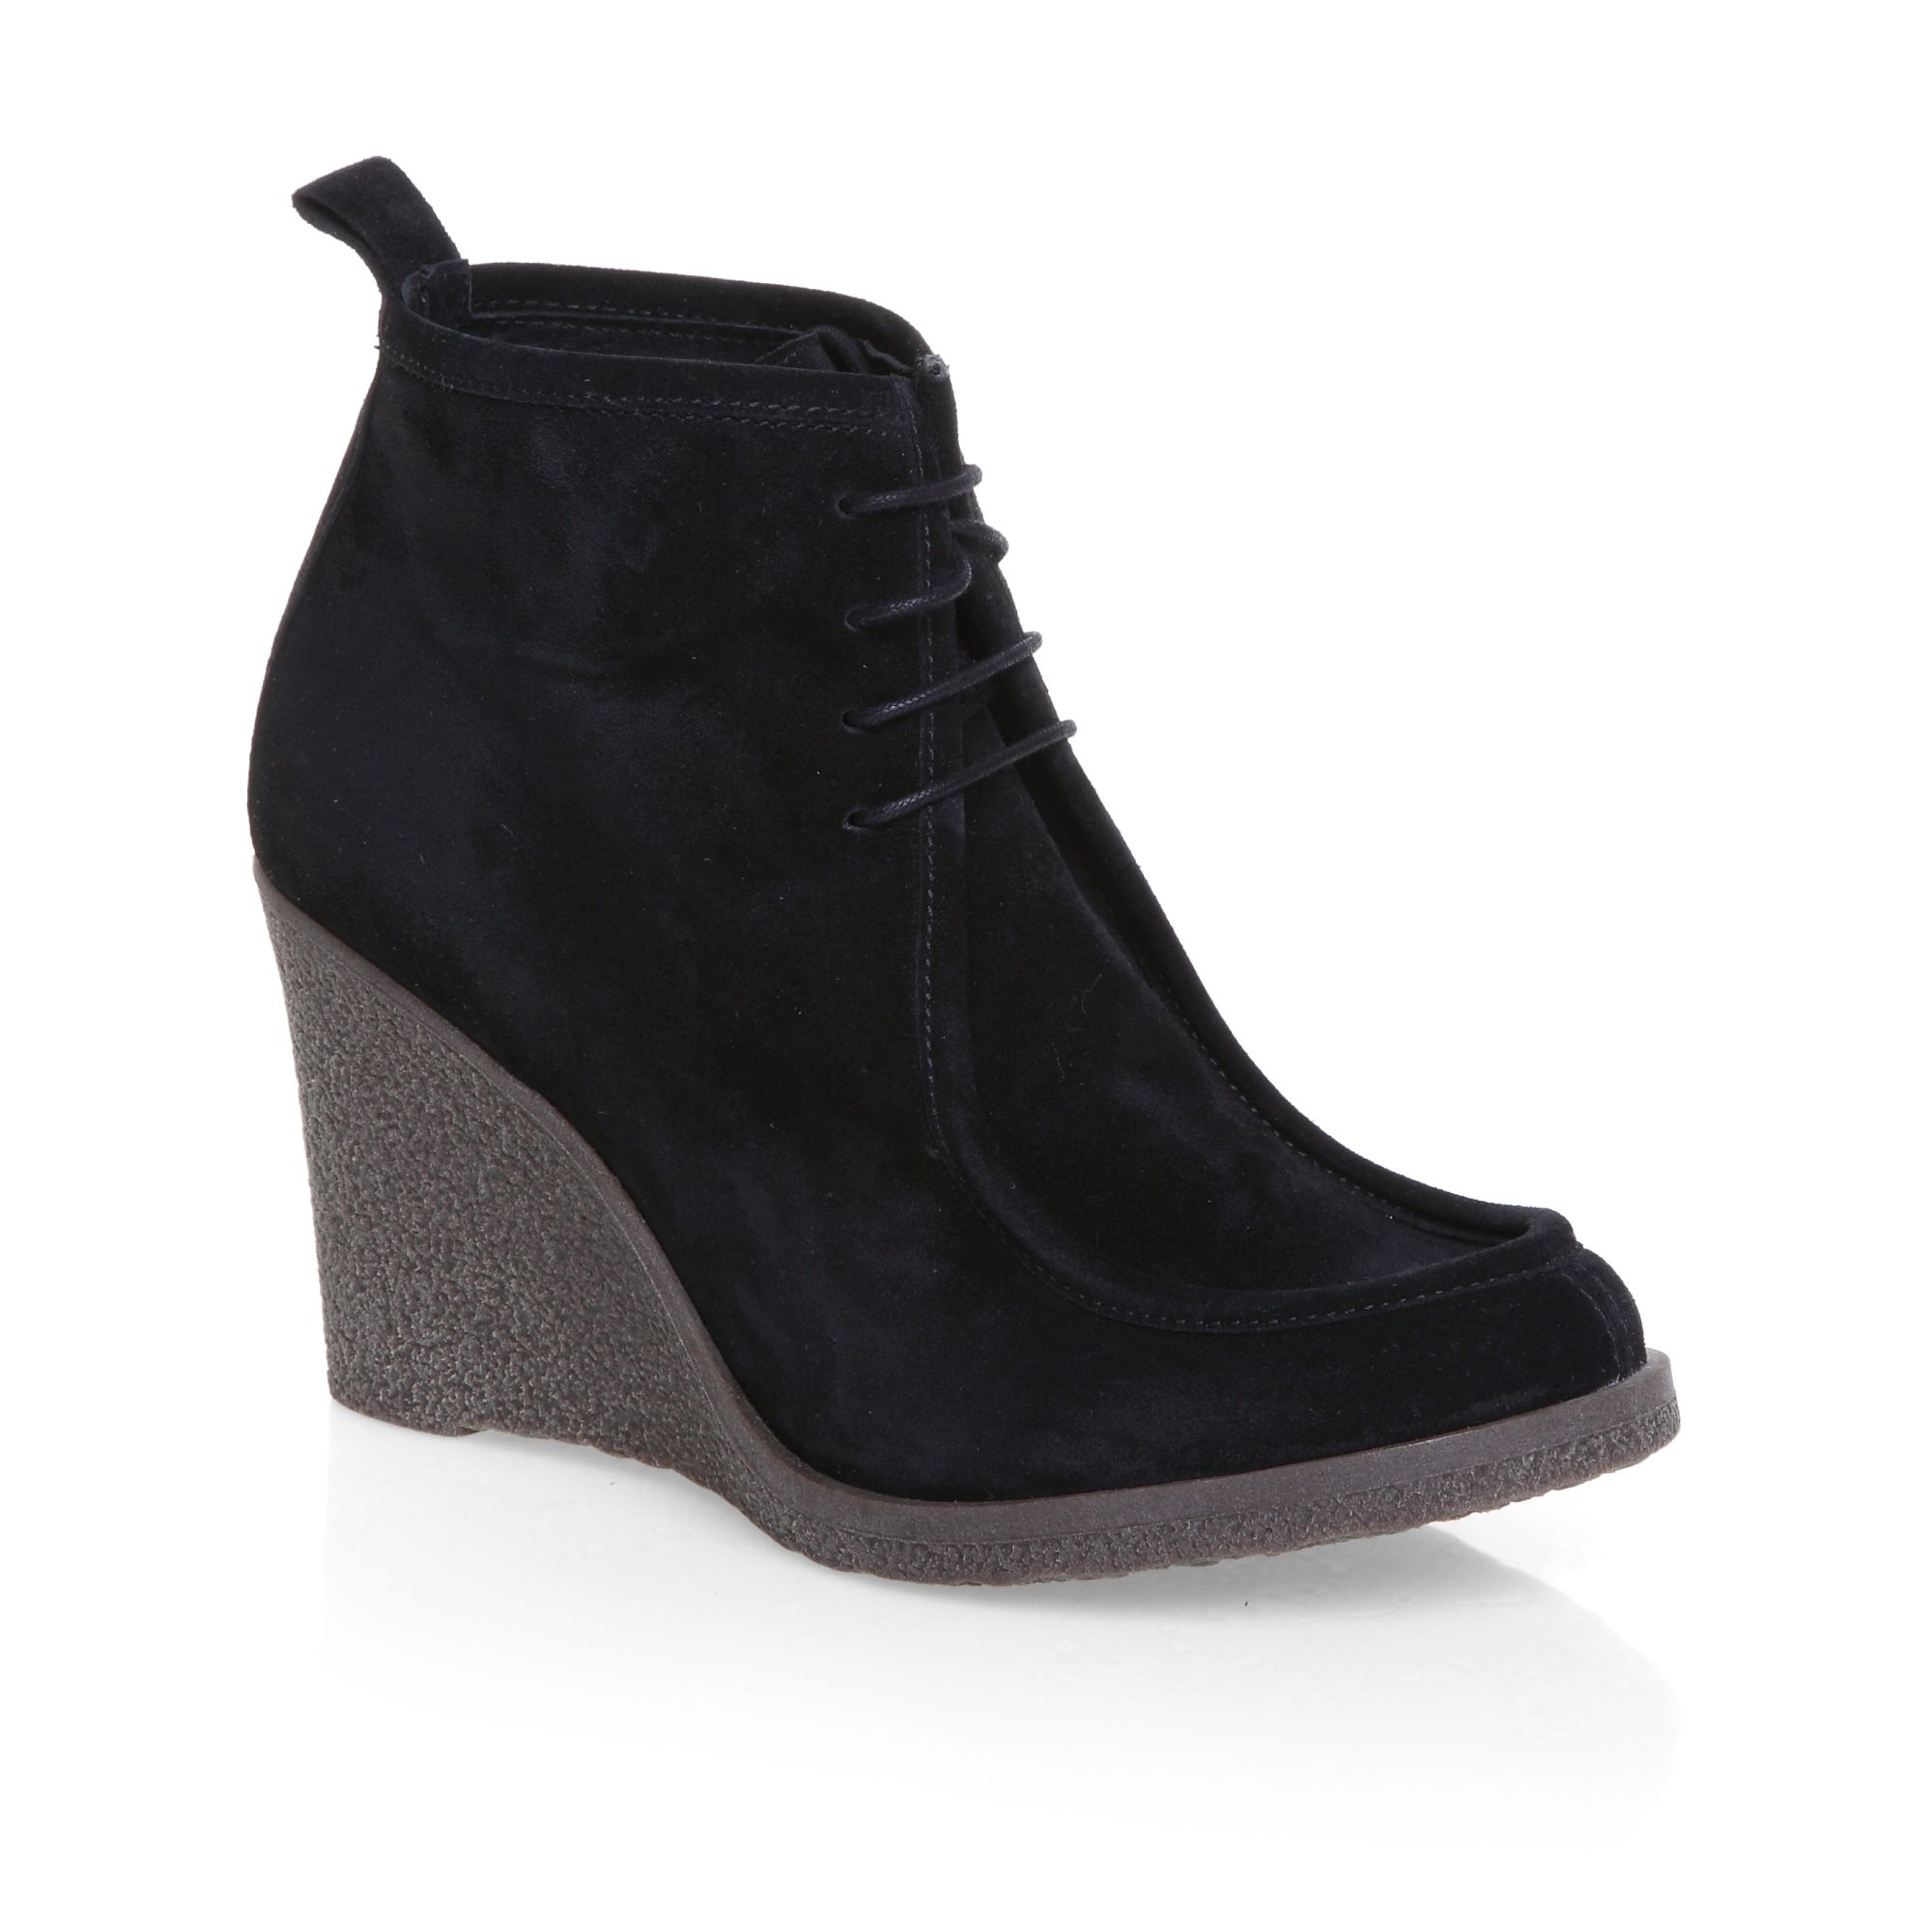 Crepe wedge lace up shoe boots